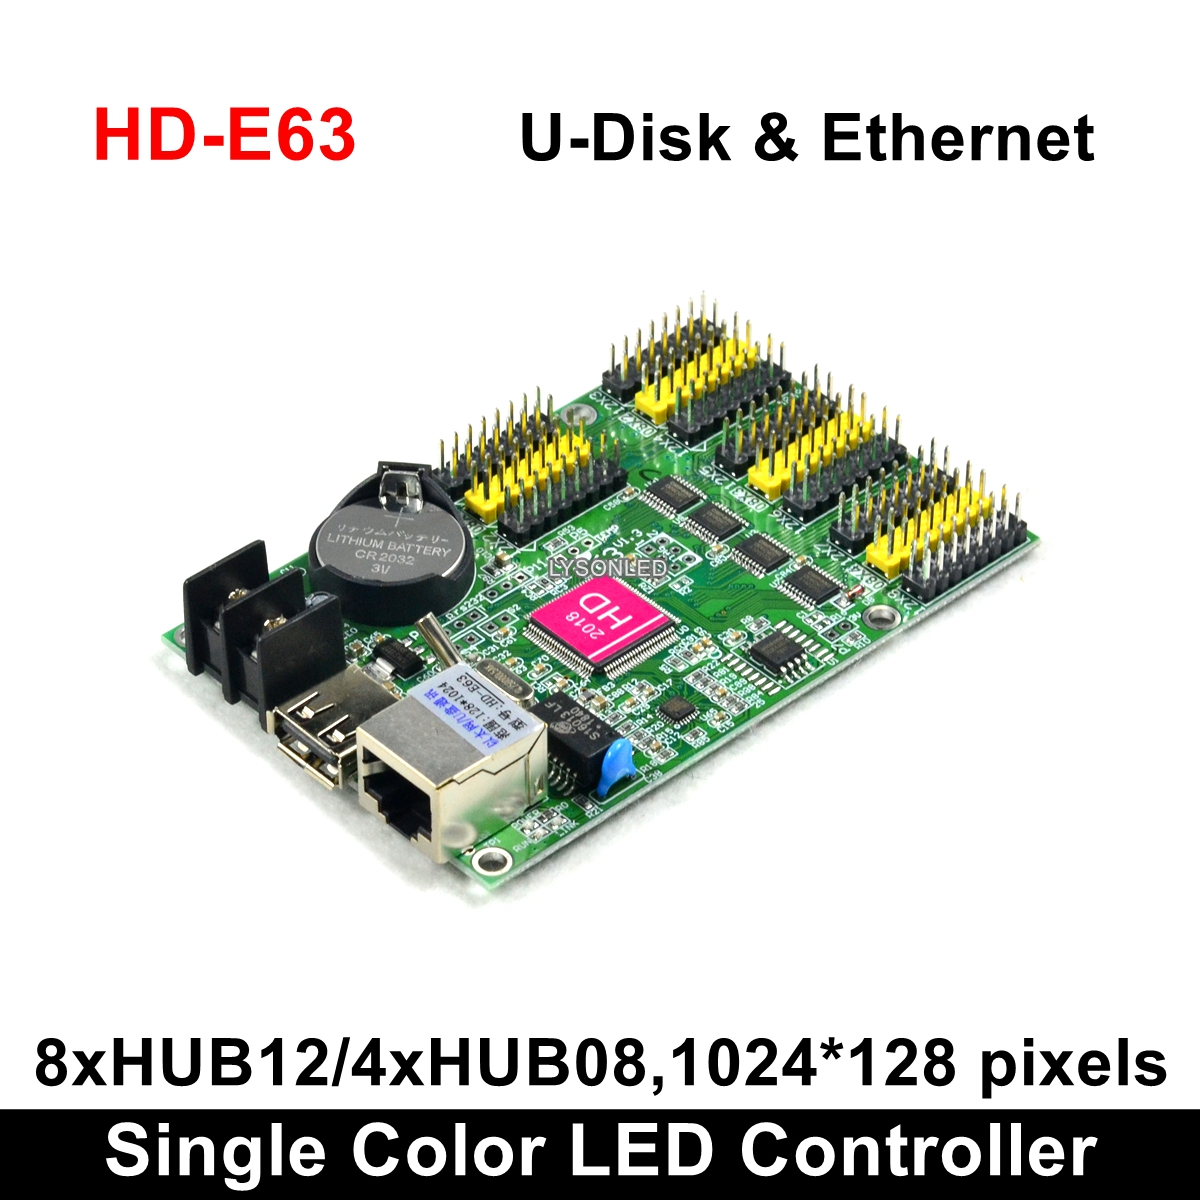 HD-E63 Ethernet Communication Ports Huidu P10 Dual Color LED Display Card, Led Programmable Sign Display Board ControllerHD-E63 Ethernet Communication Ports Huidu P10 Dual Color LED Display Card, Led Programmable Sign Display Board Controller